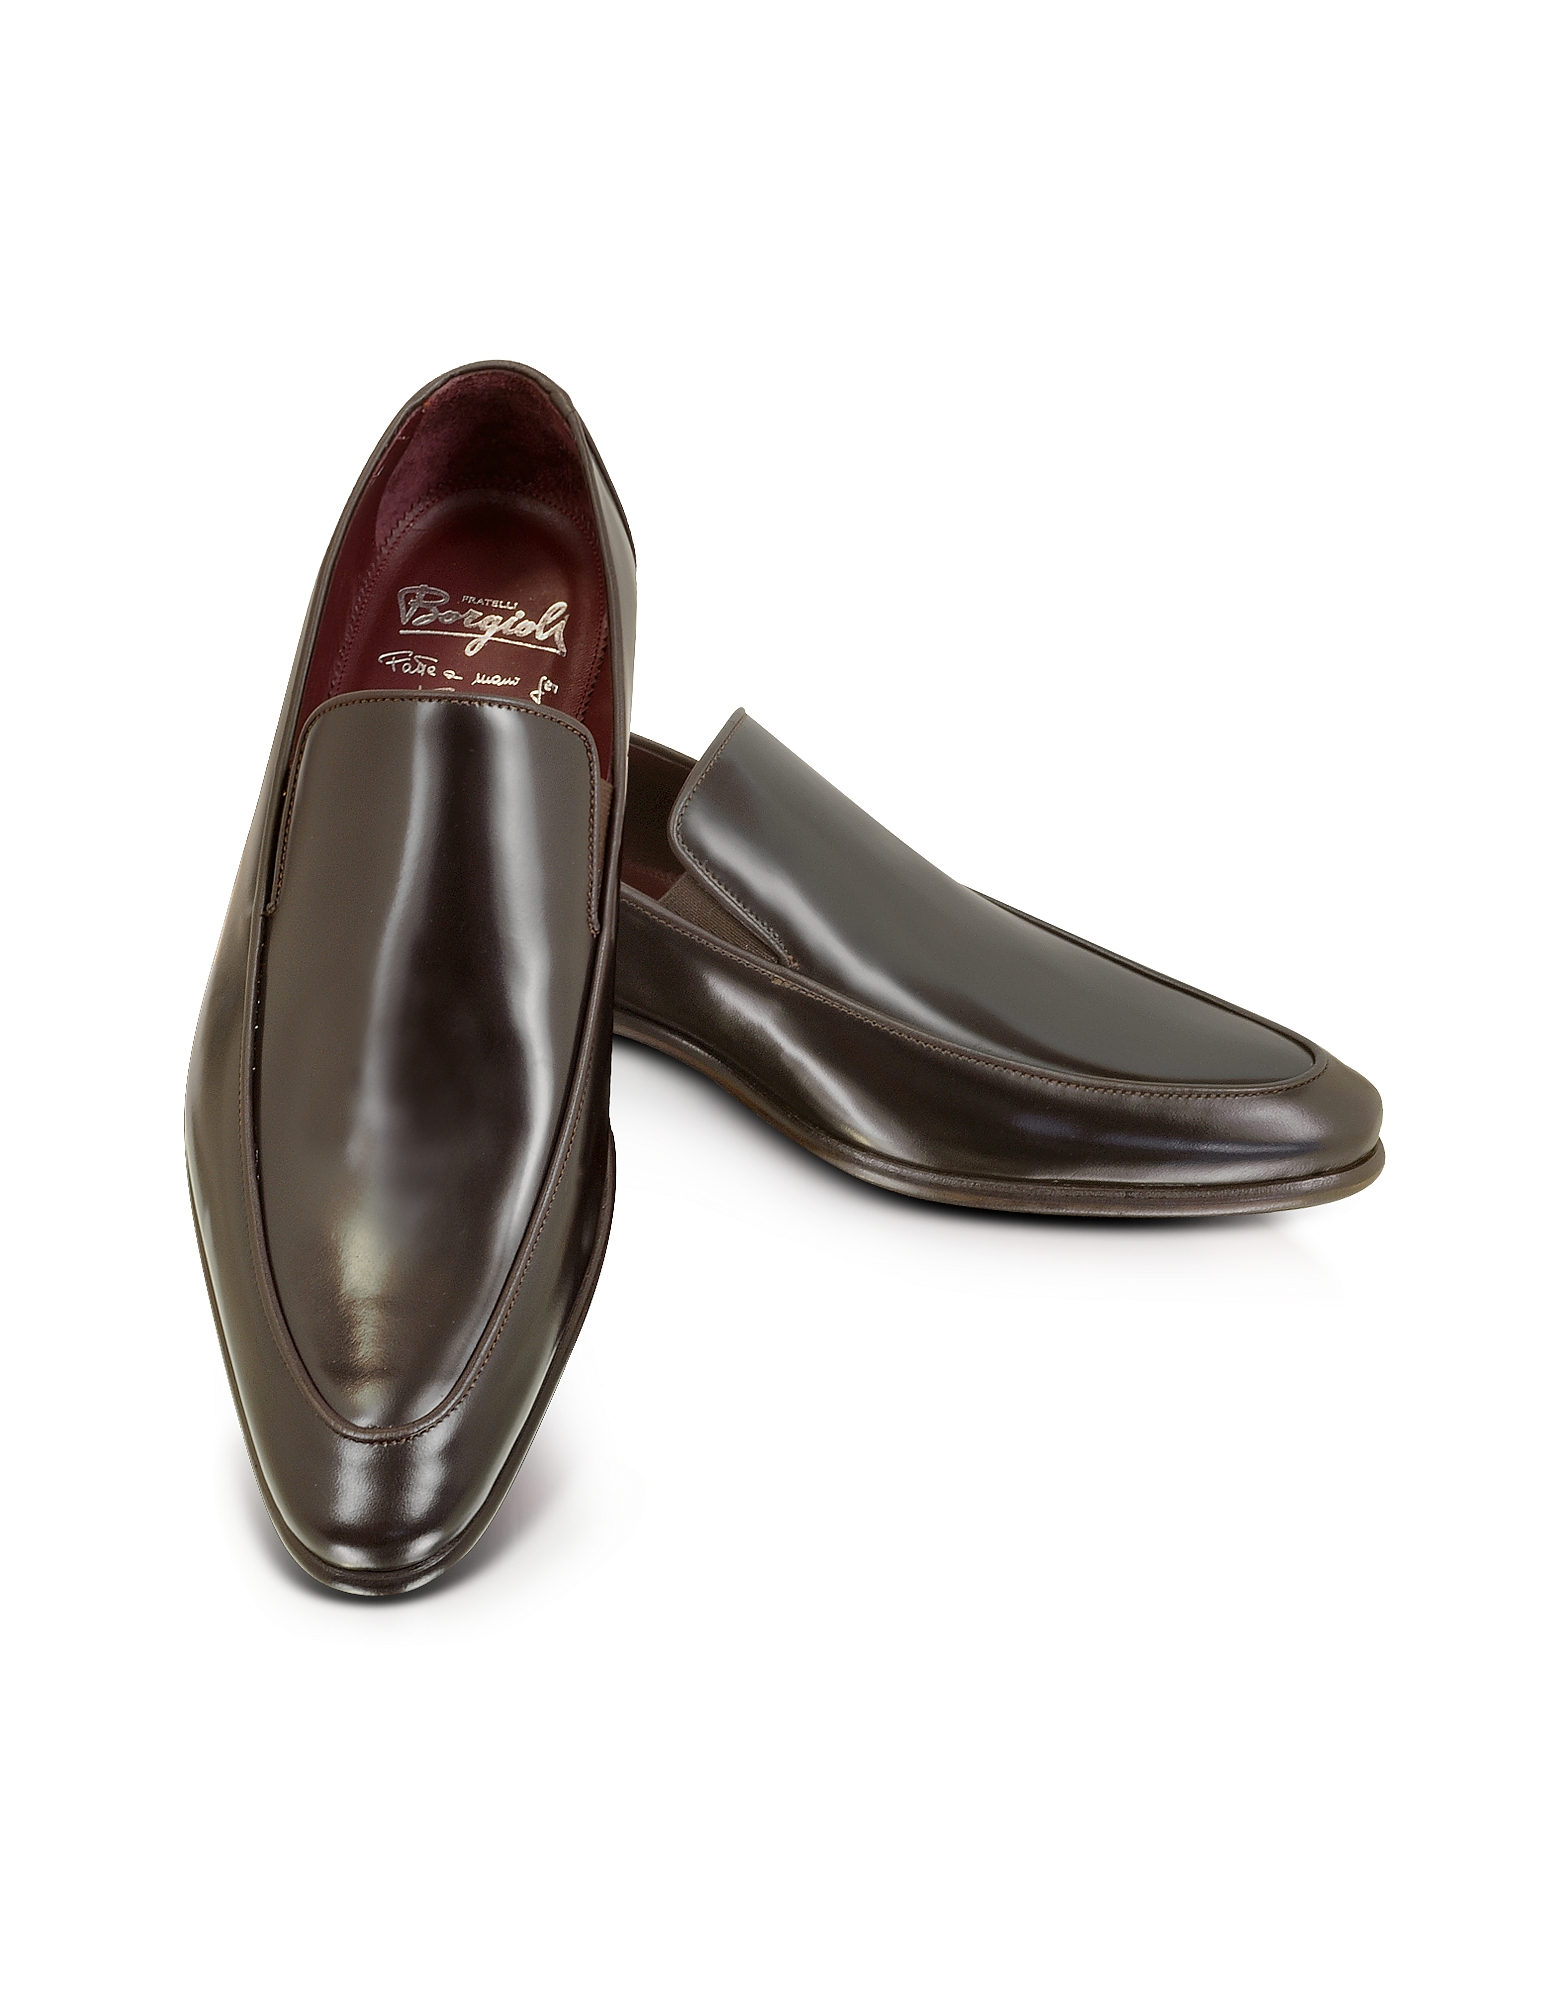 Image of Fratelli Borgioli Designer Shoes, Cricket Shiny Brown Loafer